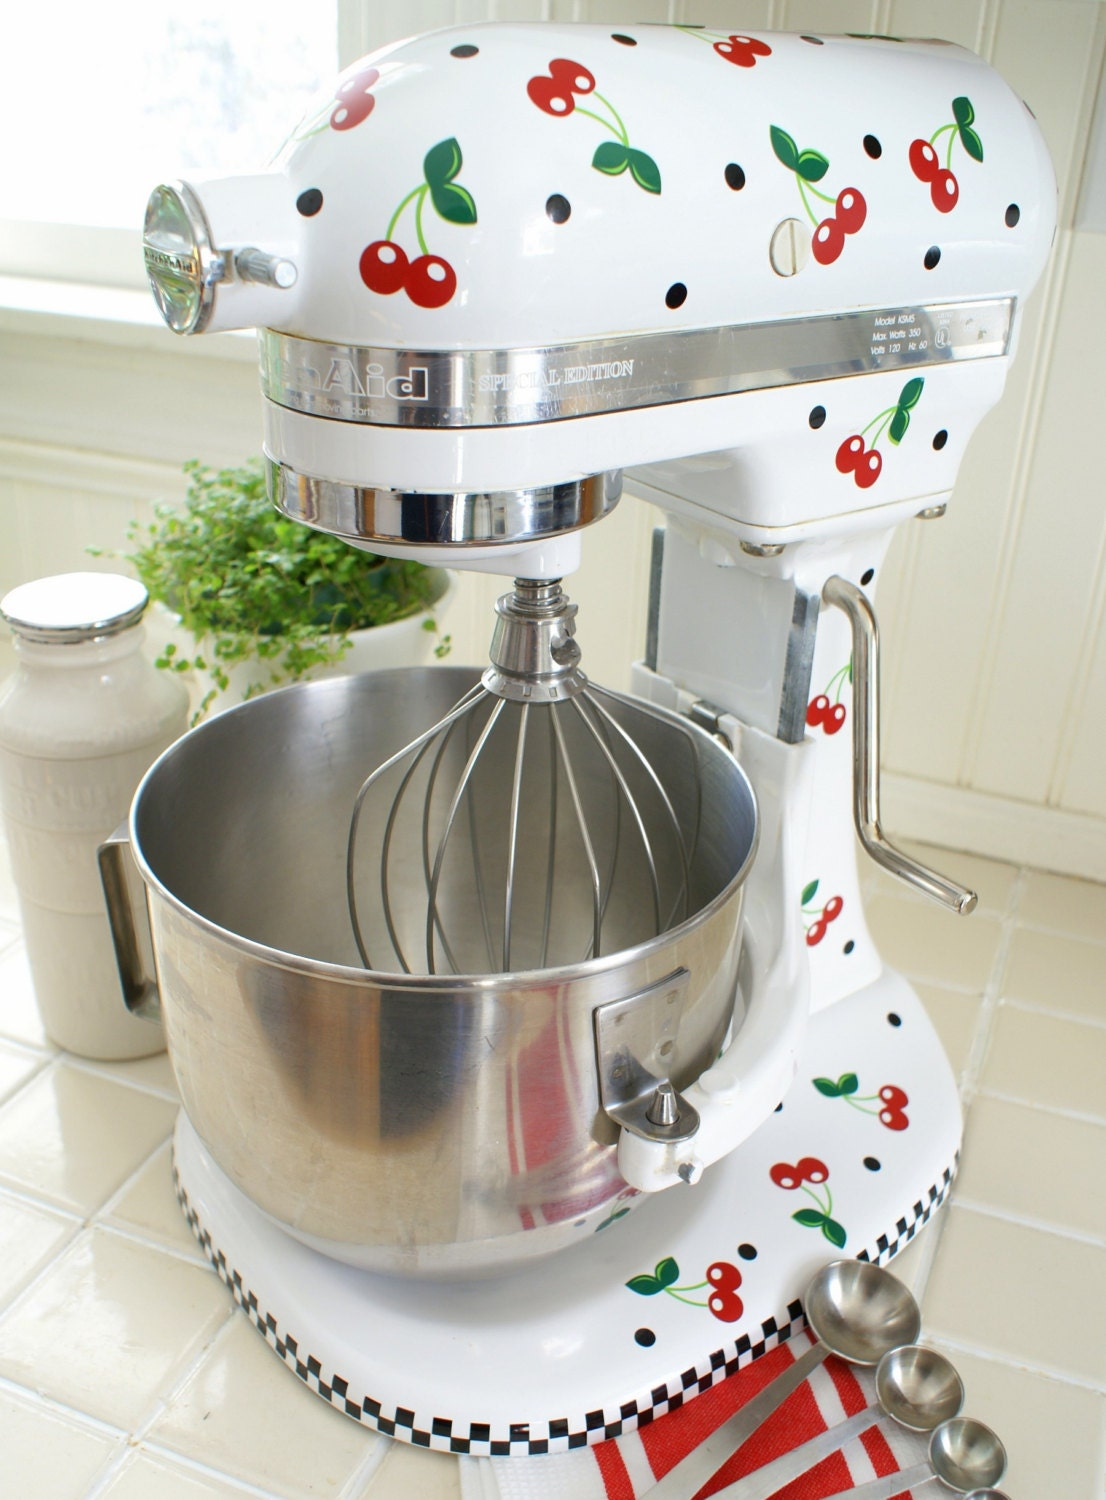 Cheery Cherry Kitchenaid Decals